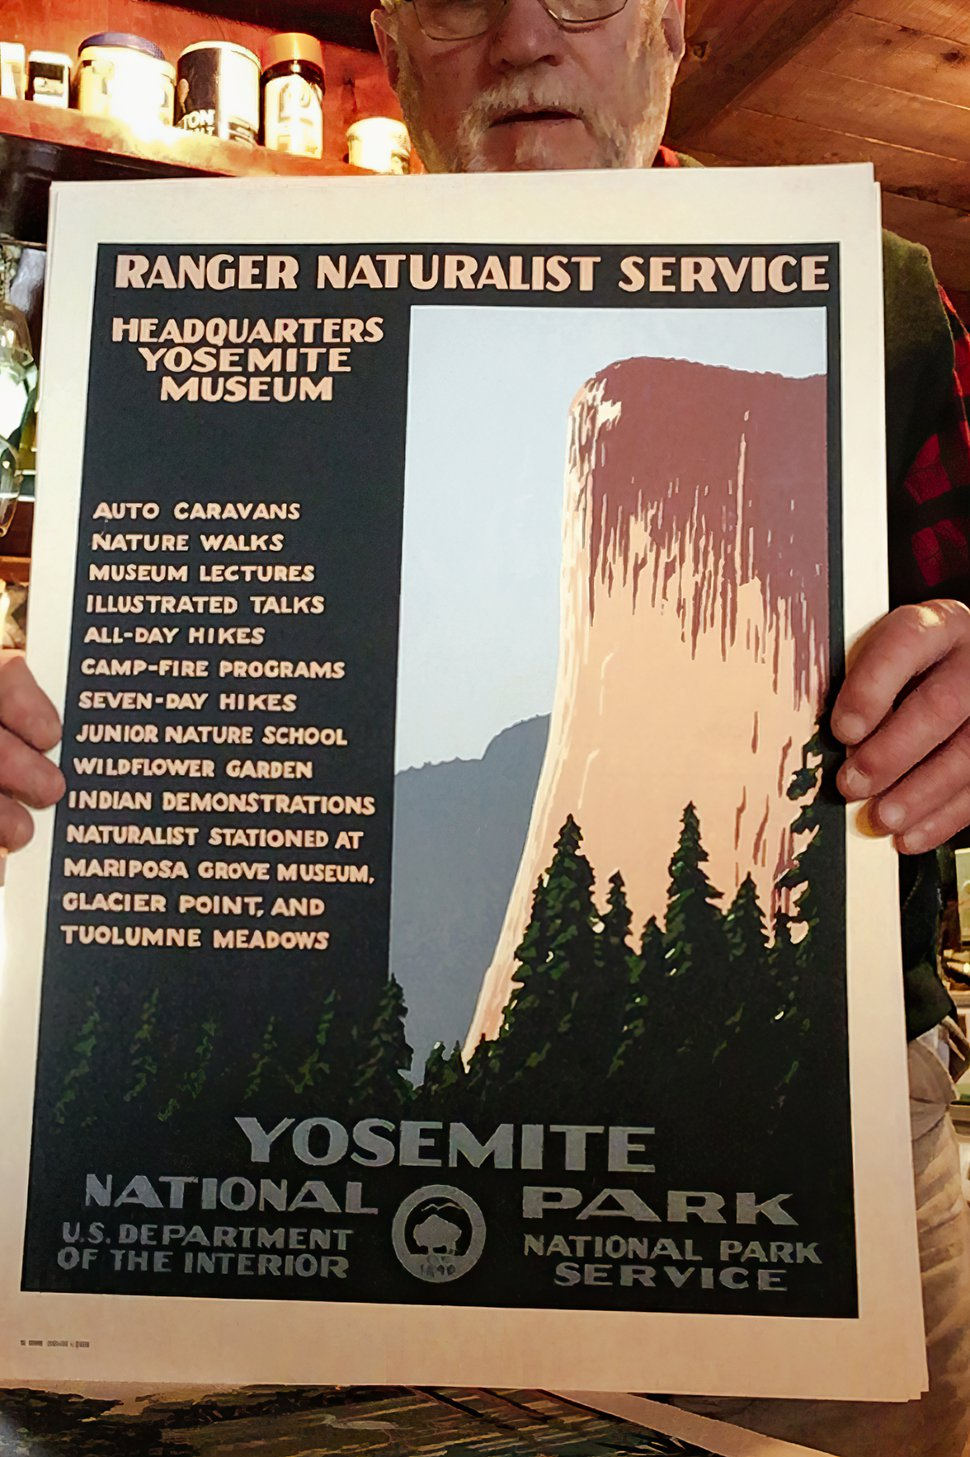 (Annie Tritt | The New York Times) Doug Leen holds a recreation he made of a Works Progress Administration-era Yosemite National Park poster, at his home on Alaska's Kupreanof Island, Aug. 19, 2020. Leen's company, Ranger Doug's Enterprises, reproduces original 1930s WPA national park posters and 32 contemporary designs in the style of the WPA originals.